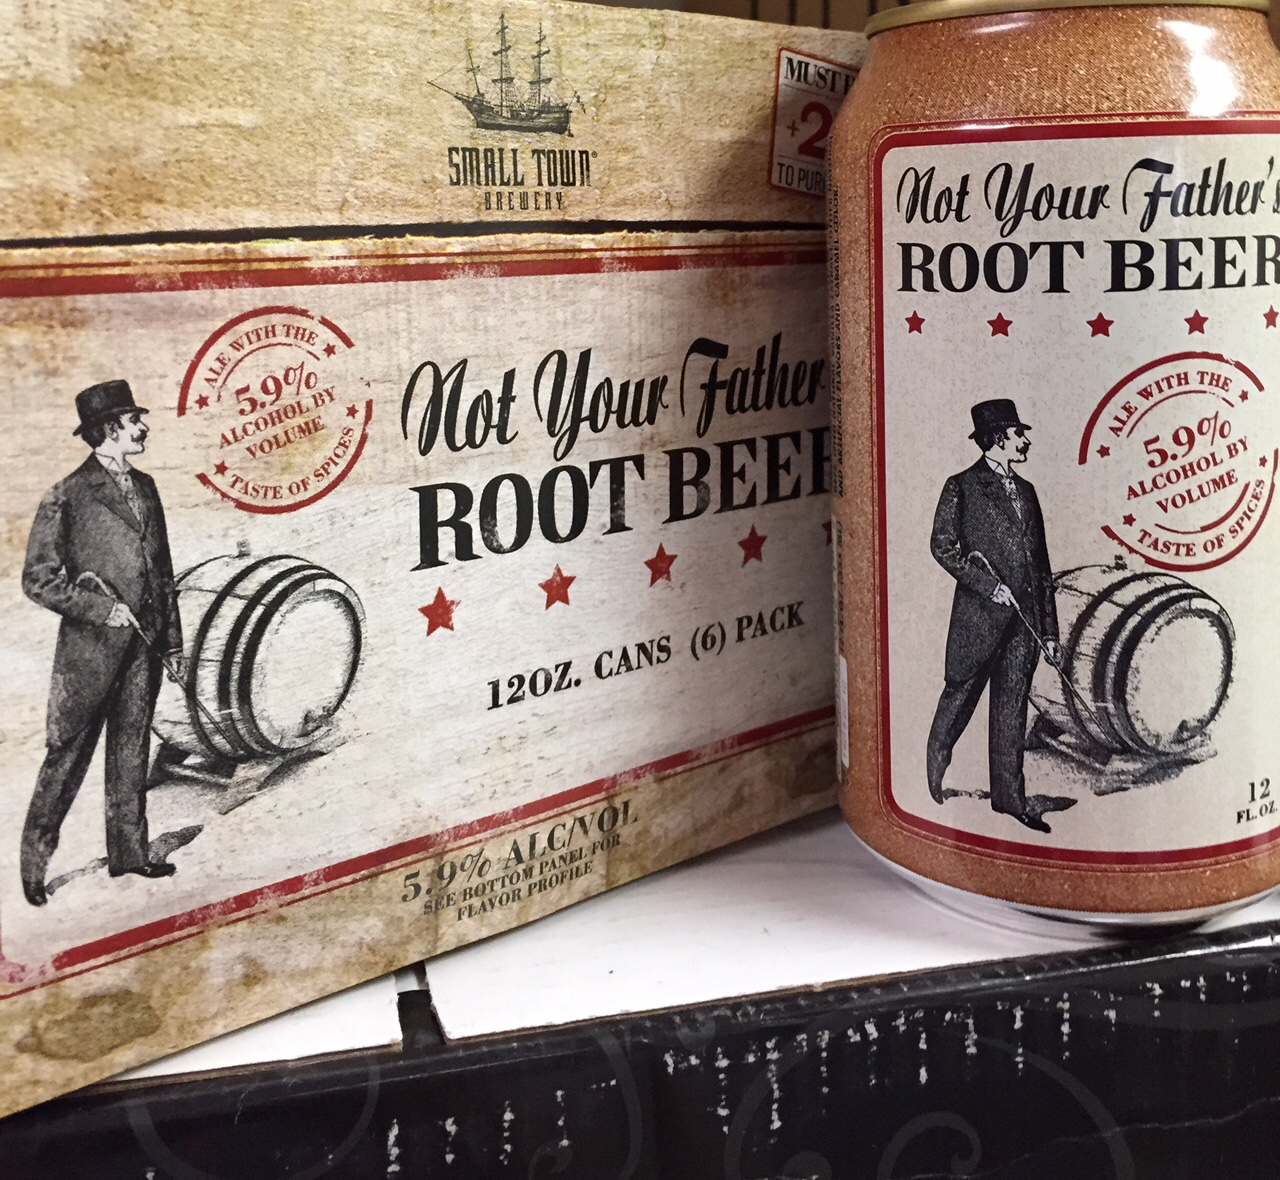 Where to buy not your father s root beer - Not Your Father S Root Beer In Cans